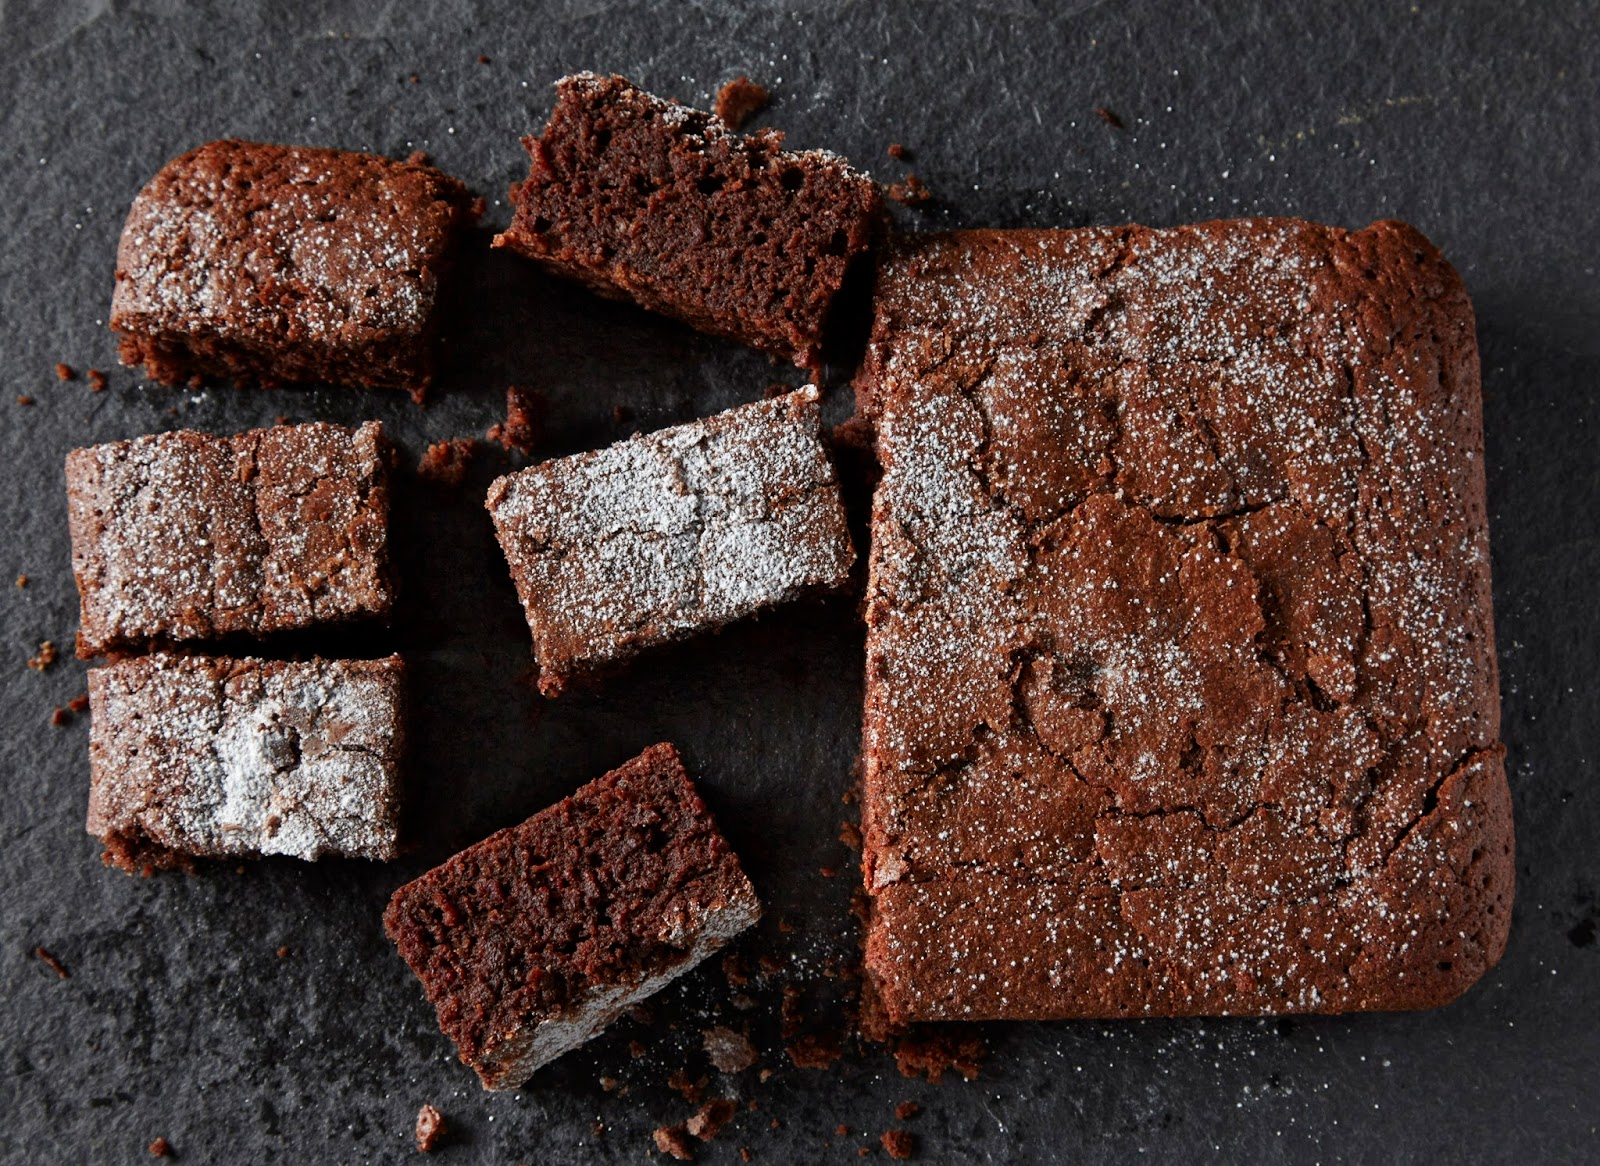 Beetroot Brownies: Why Not Add Some Vegetables Too?